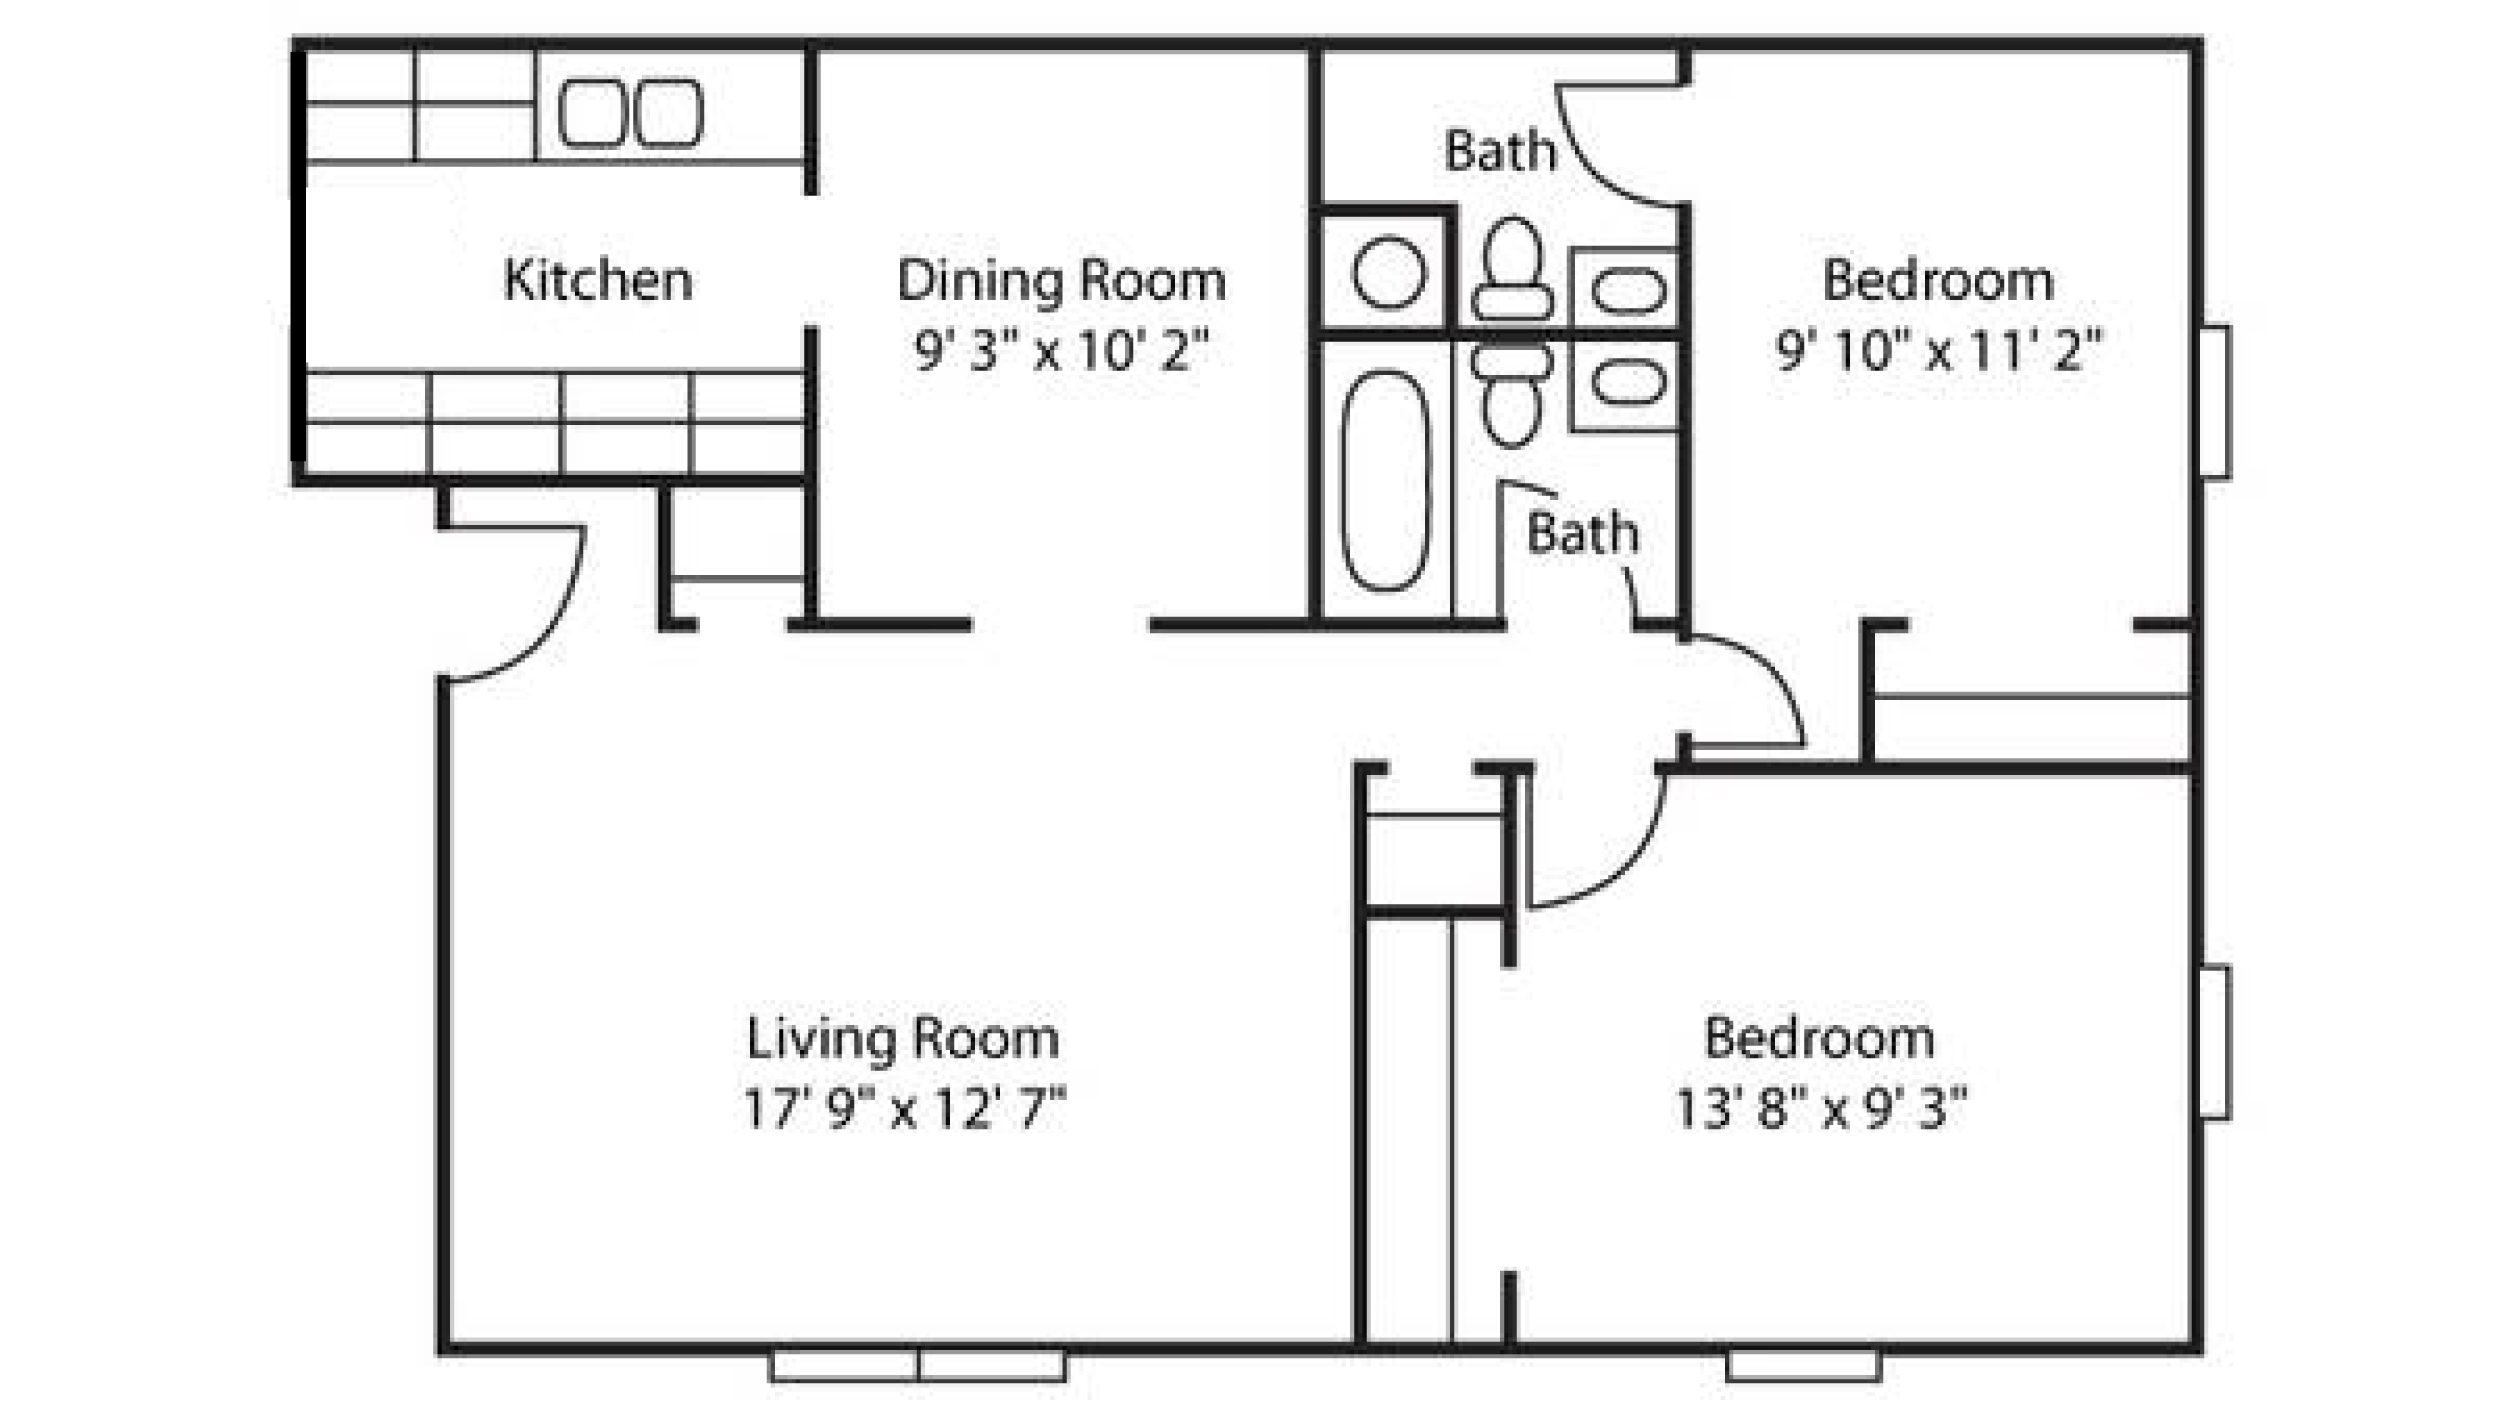 https://www.sturbridgesquare.com/wp-content/uploads/2014/10/3BRfloorplan.jpg